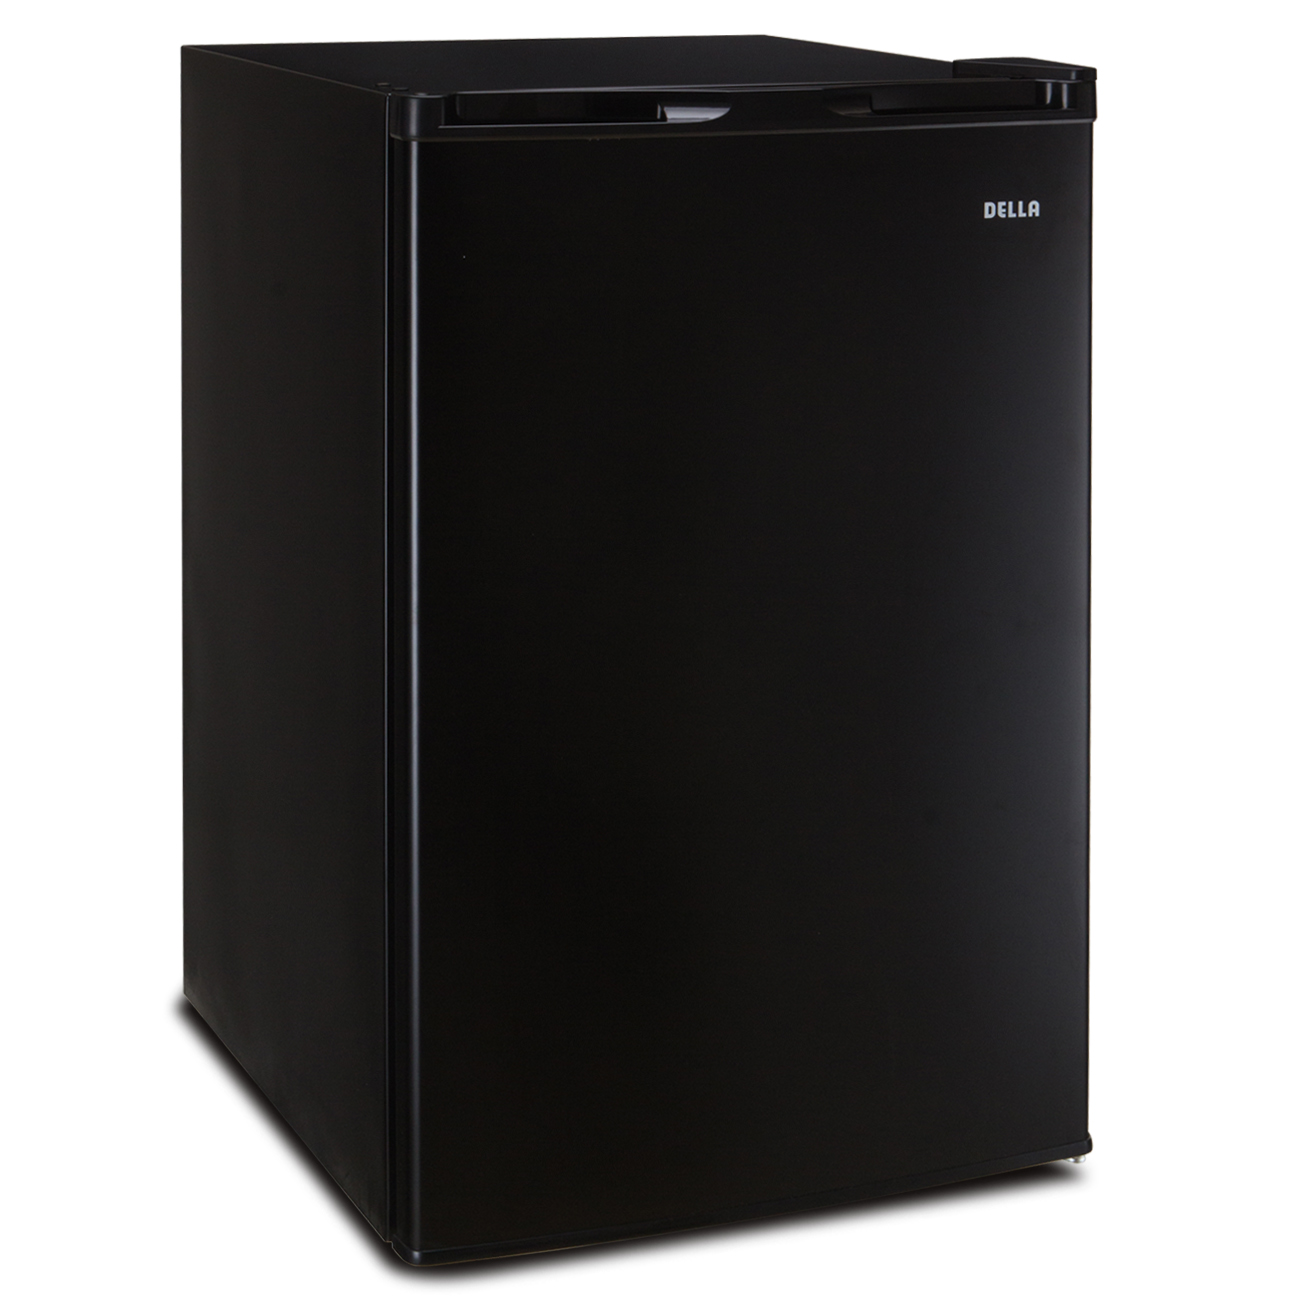 Compact Single Reversible Door Upright Freezer Appliances